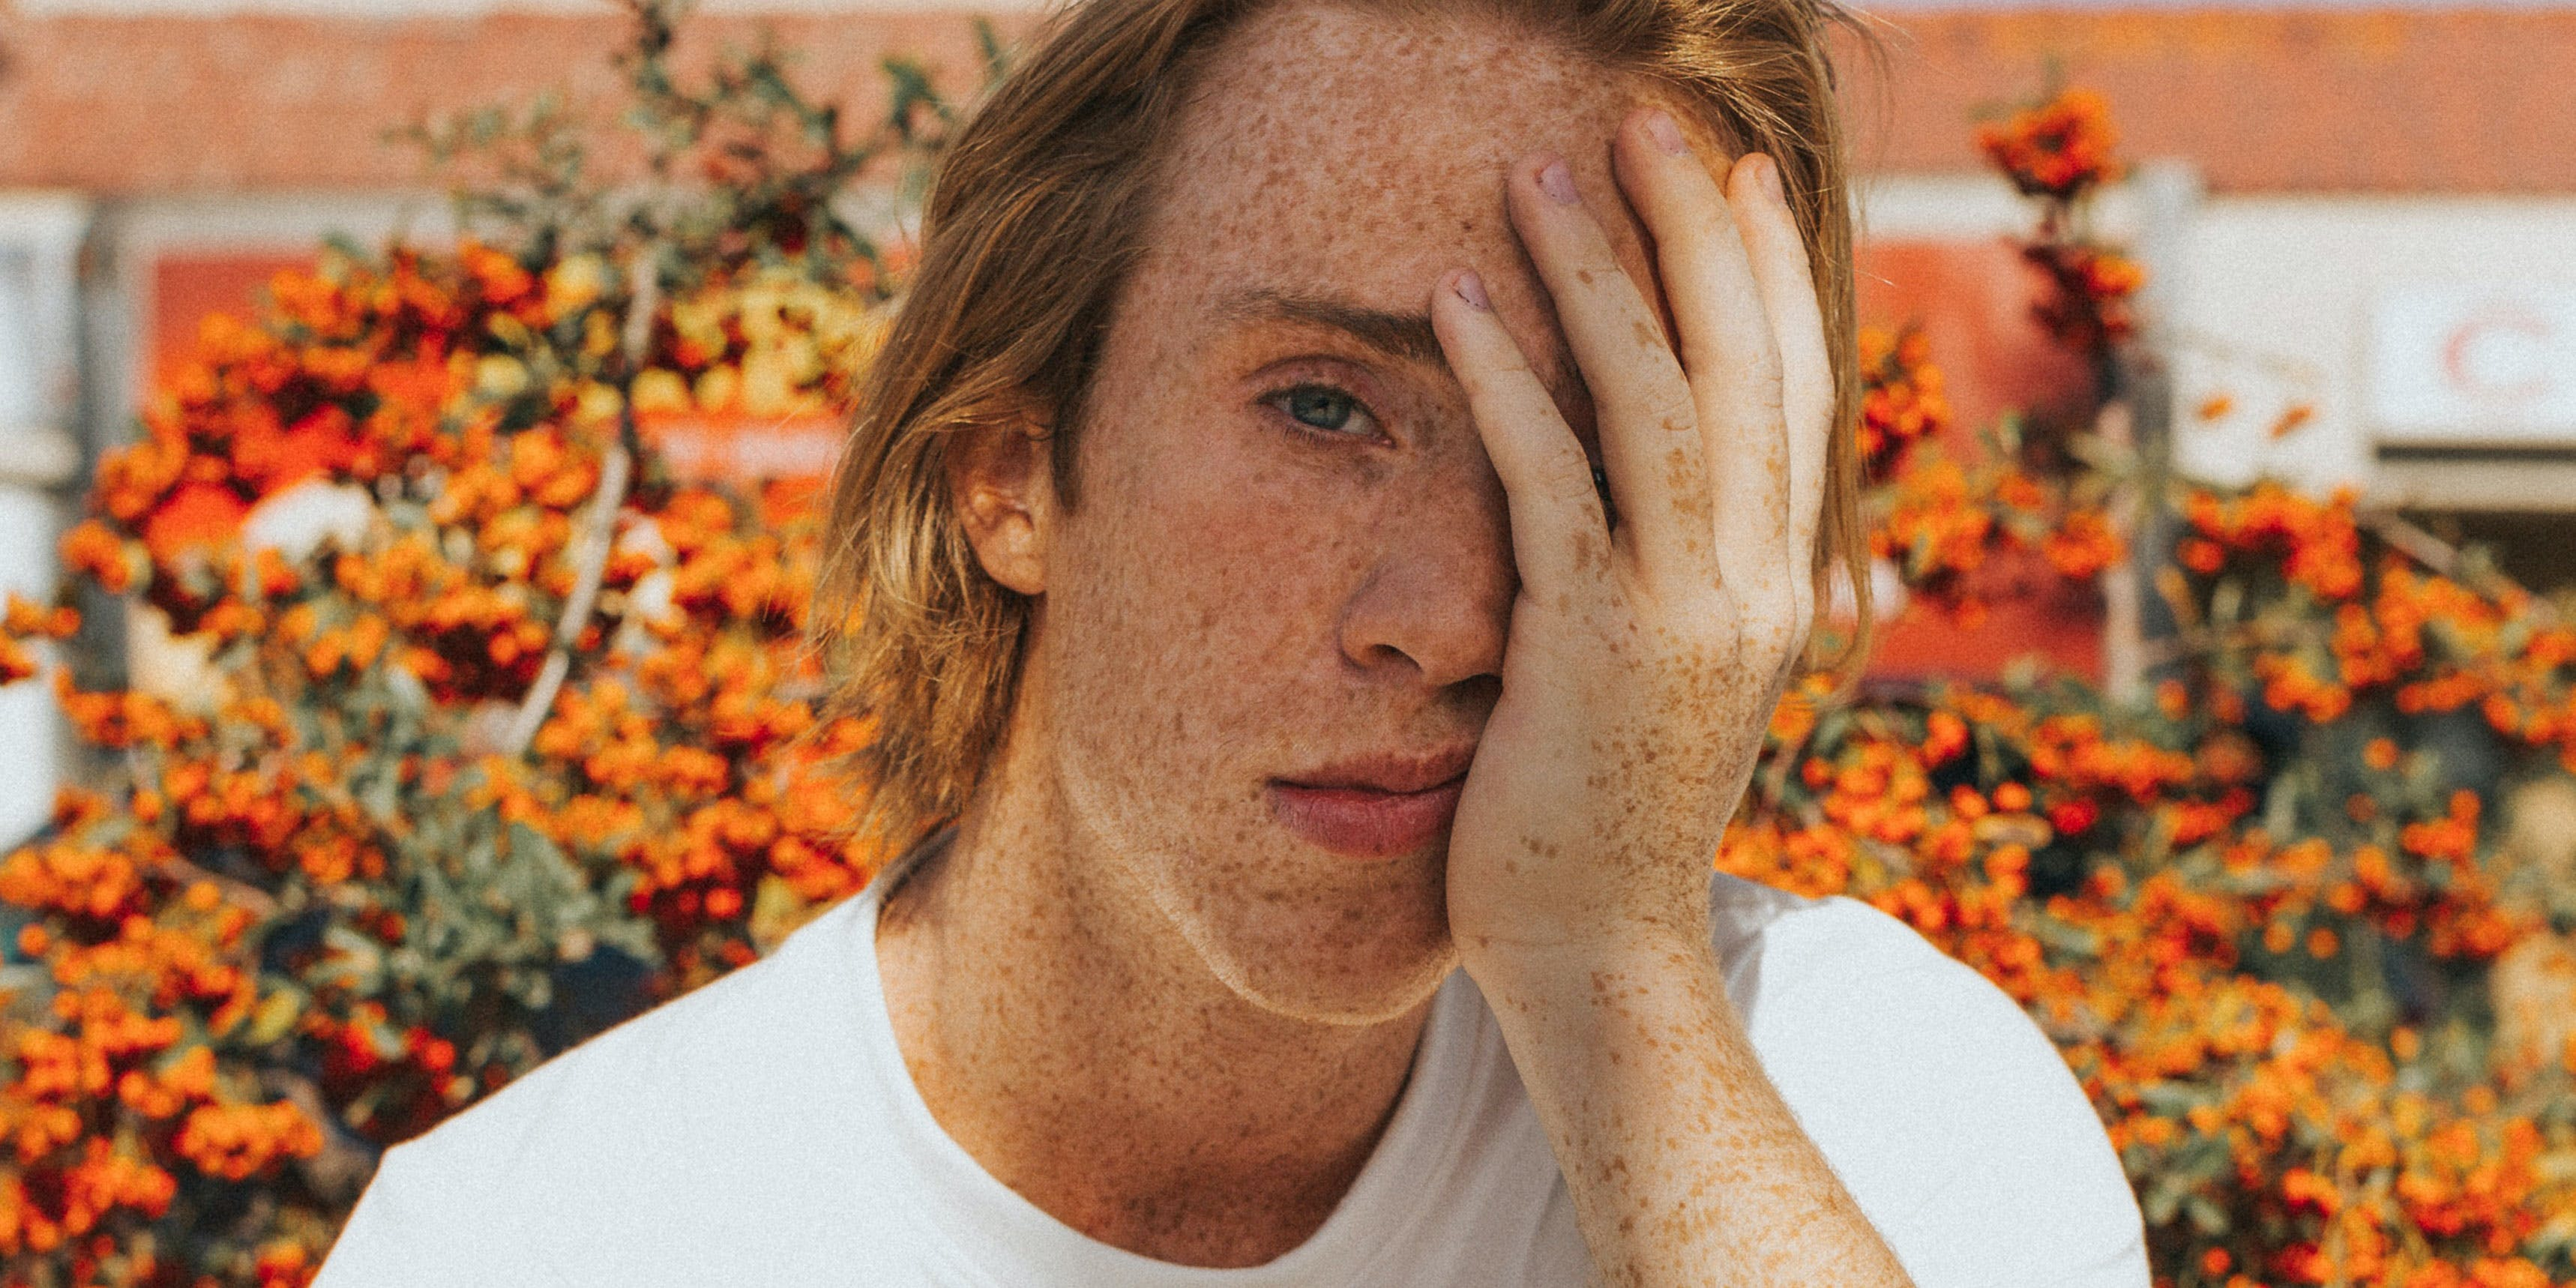 Here, a man with a migraine is shown holding his head. In this article, we explore the best strains for migraines